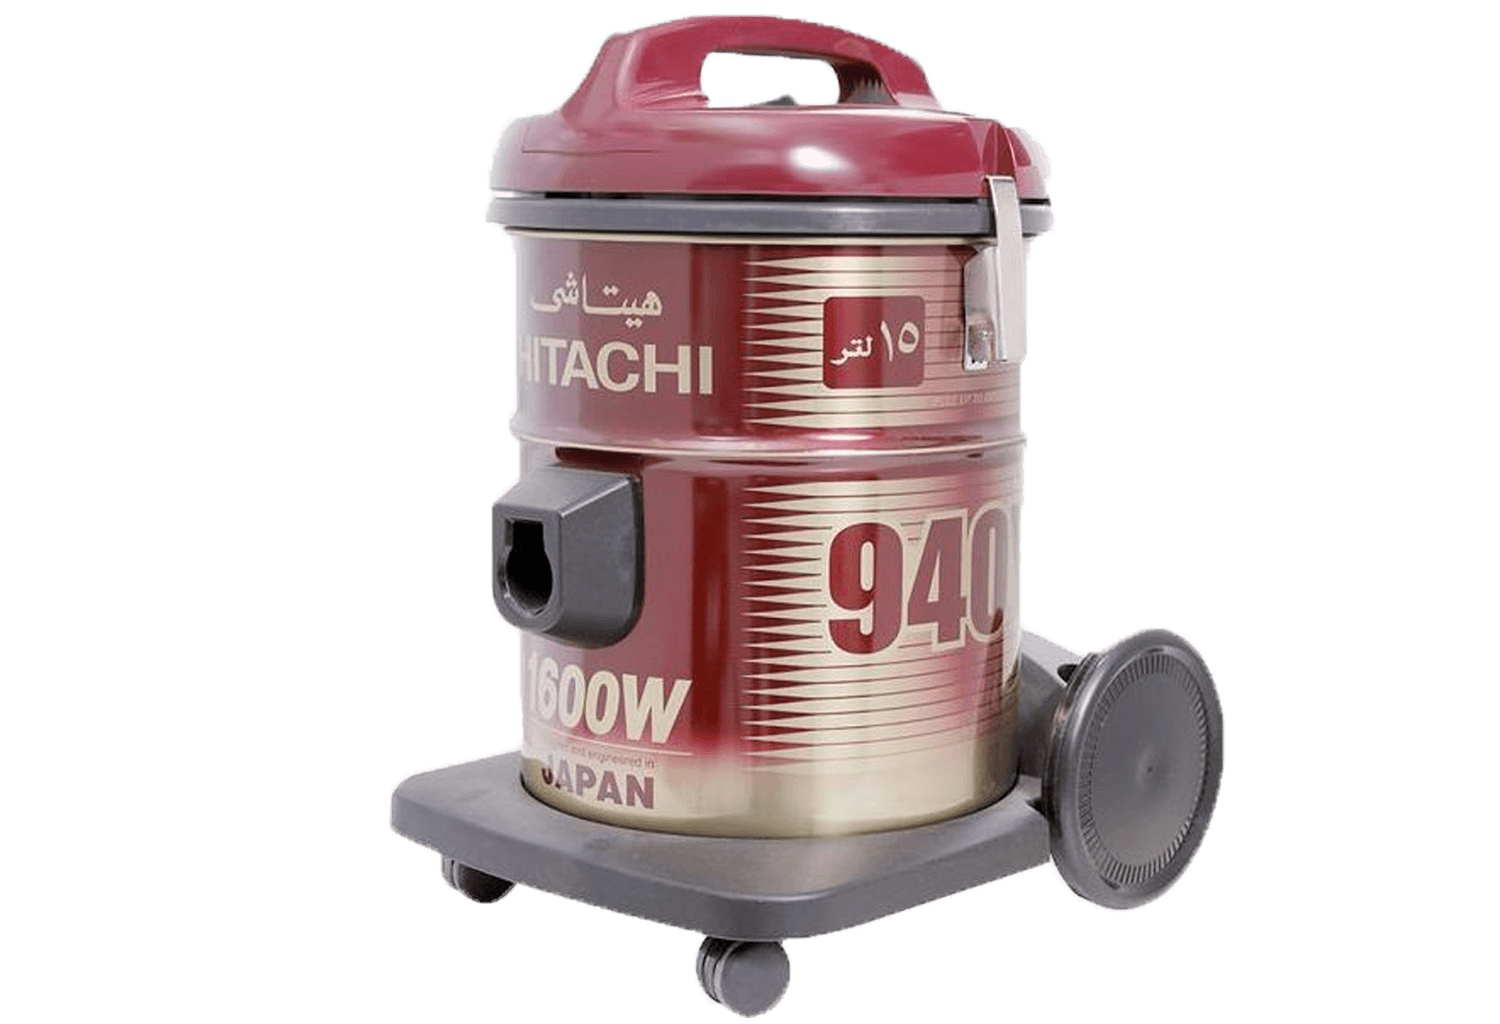 Hitachi Vacuum Cleaner CV-940Y (Wine Red)